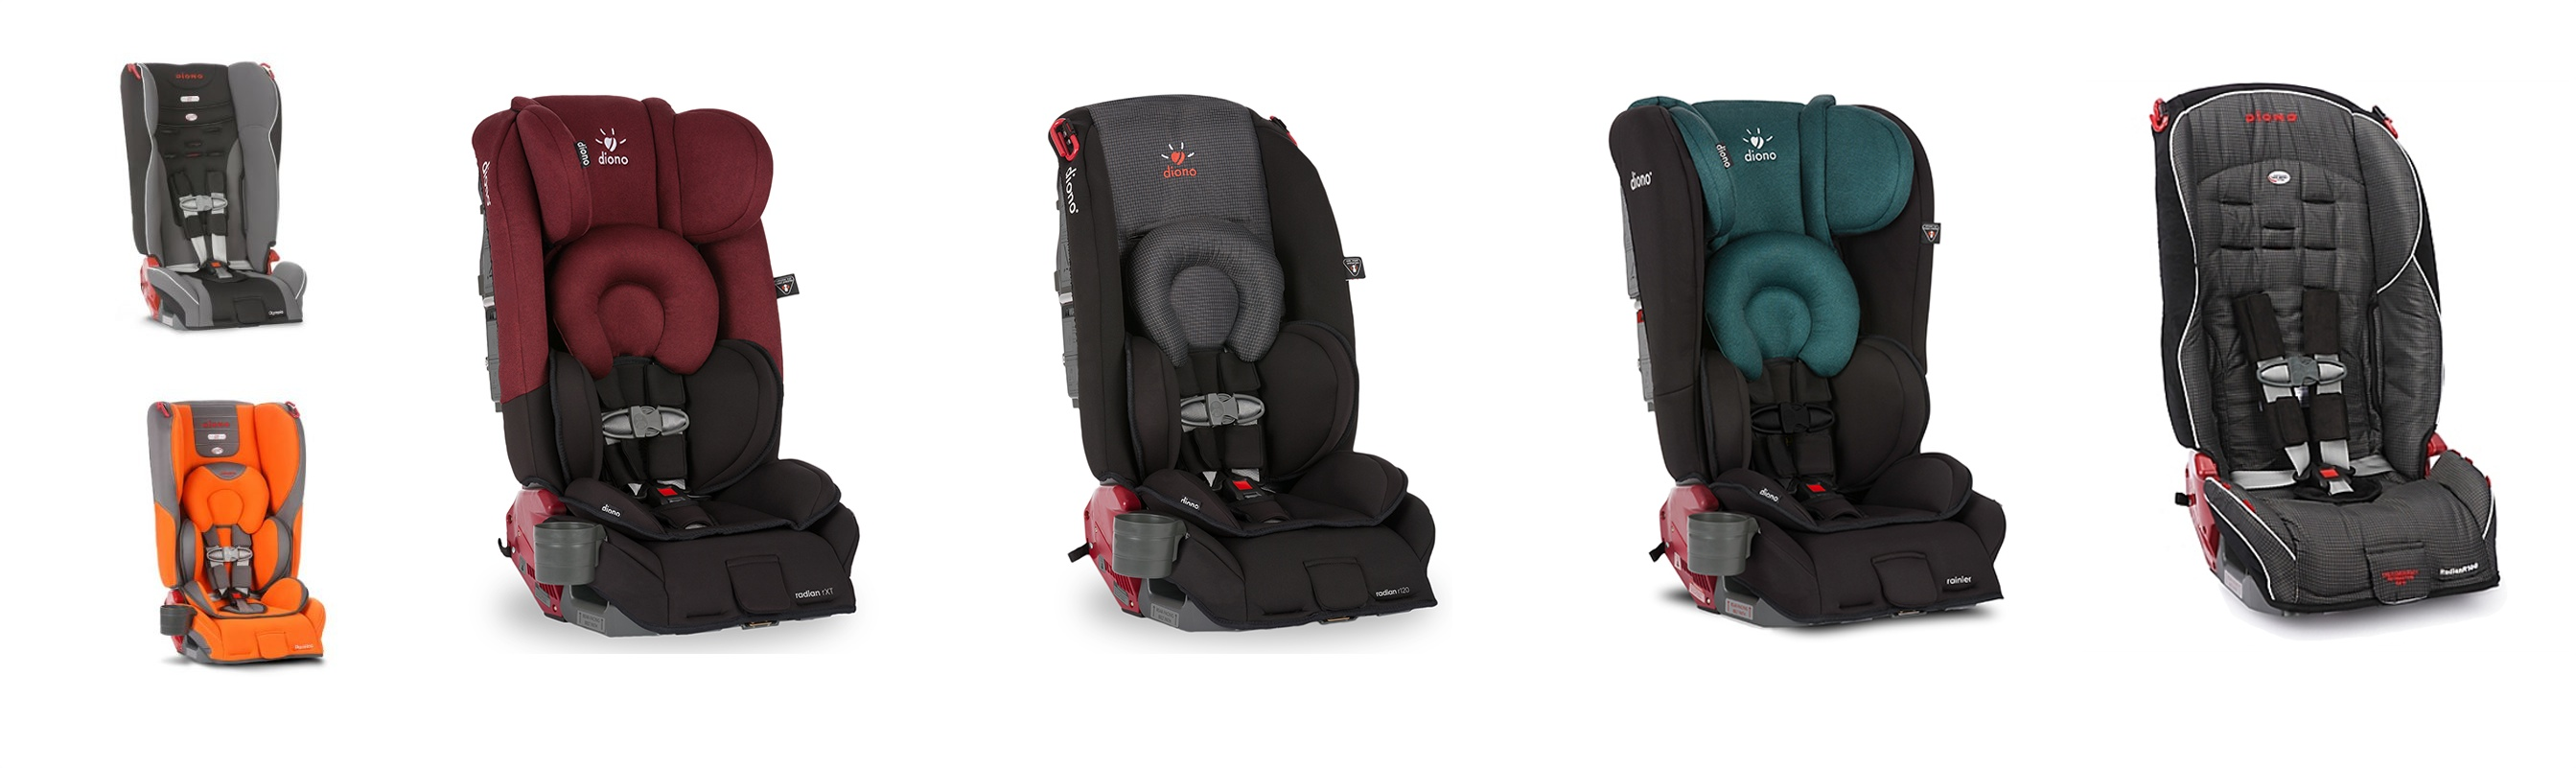 Diono Recalls Nearly 520,000 Child Car Seats Over Concerns About Restraint Strength